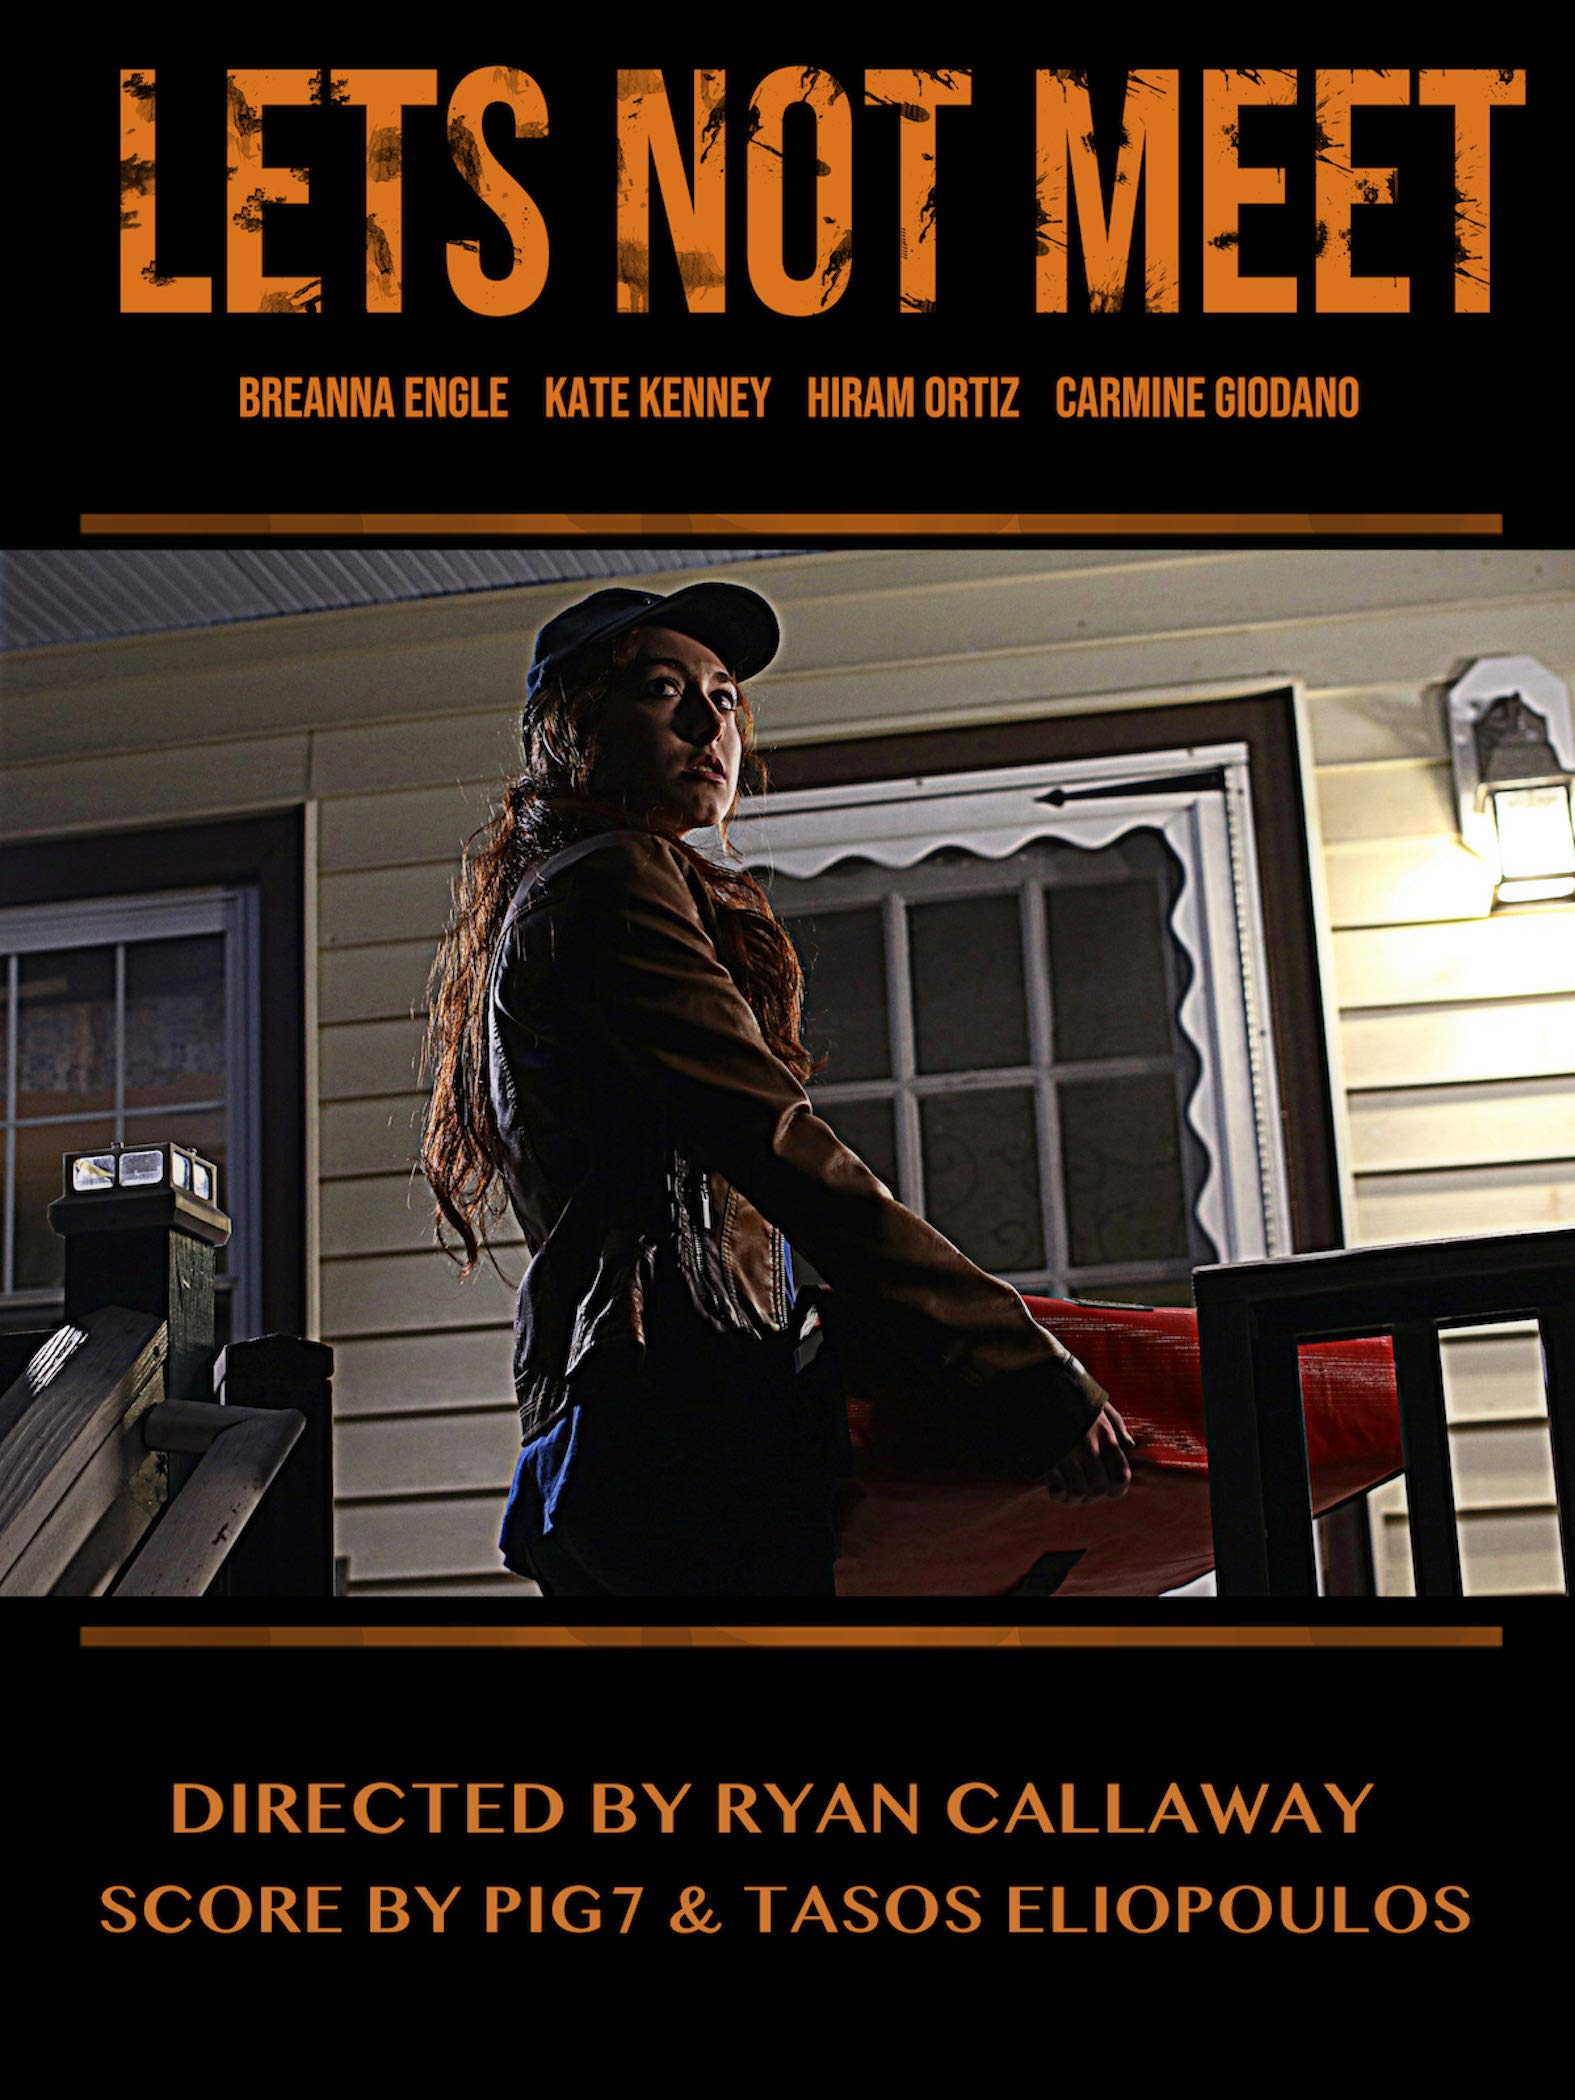 Watch Let S Not Meet Prime Video The smiling man is an urban legend about a tall, silent man who on april 6th, 2012, redditor blue_tidal submitted a story titled the smiling man to the /r/letsnotmeet1 subreddit, a community. watch let s not meet prime video